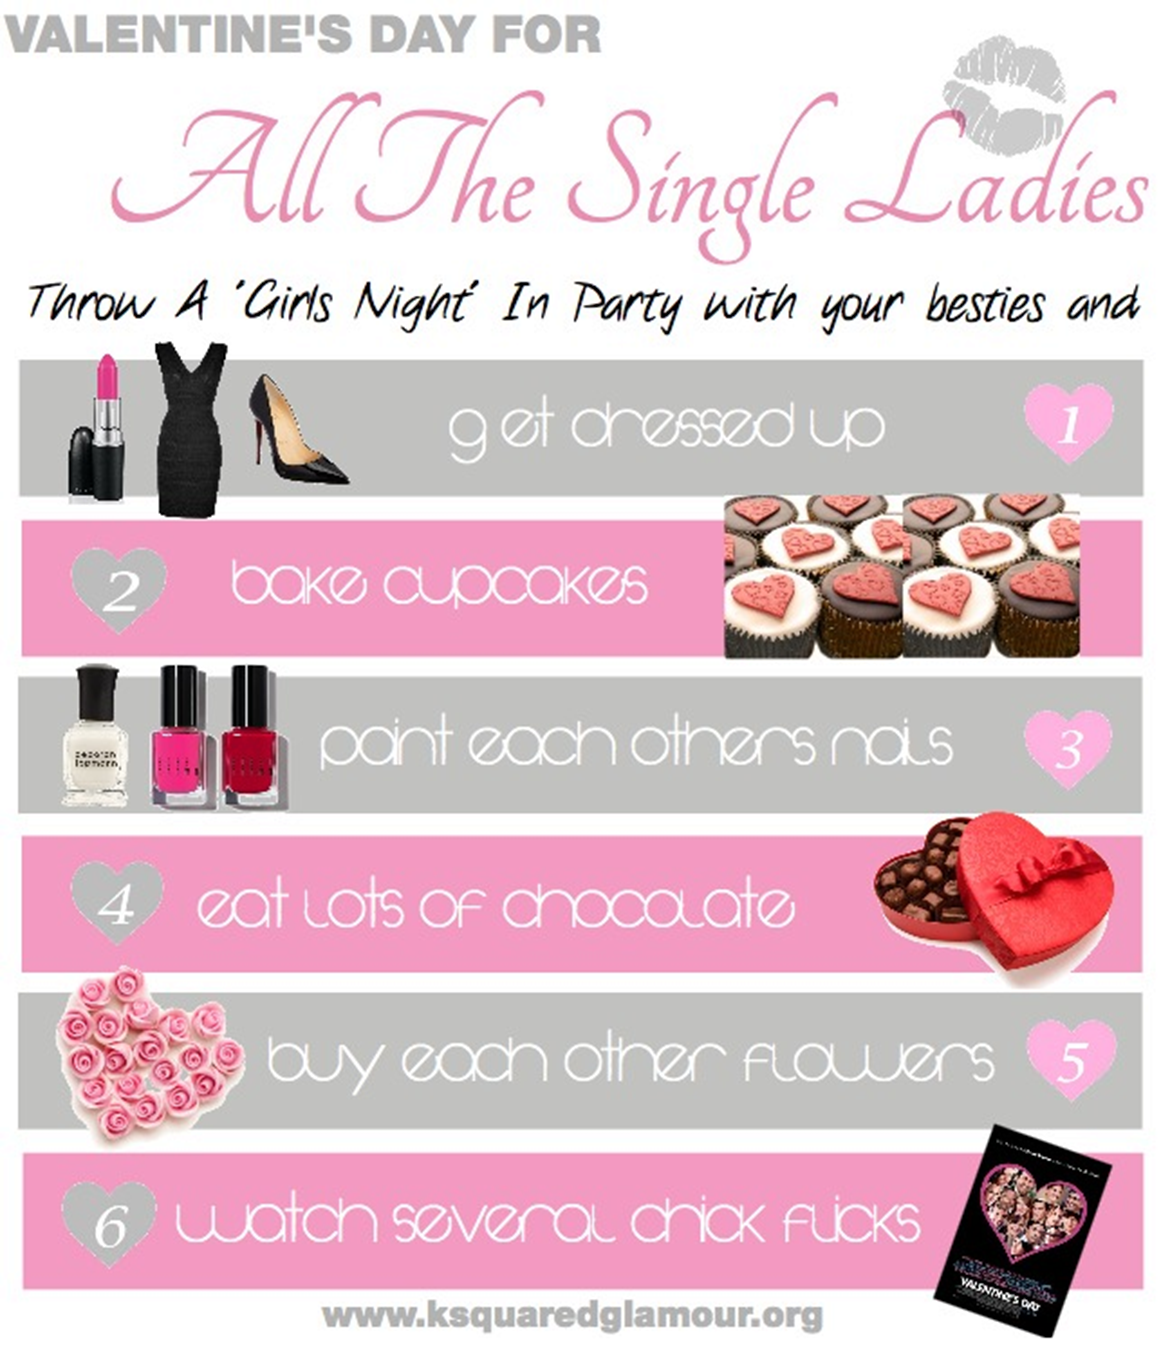 Single On Valentines Day Quotes Valentines Day For The Single Ladiesgirls Night In Party